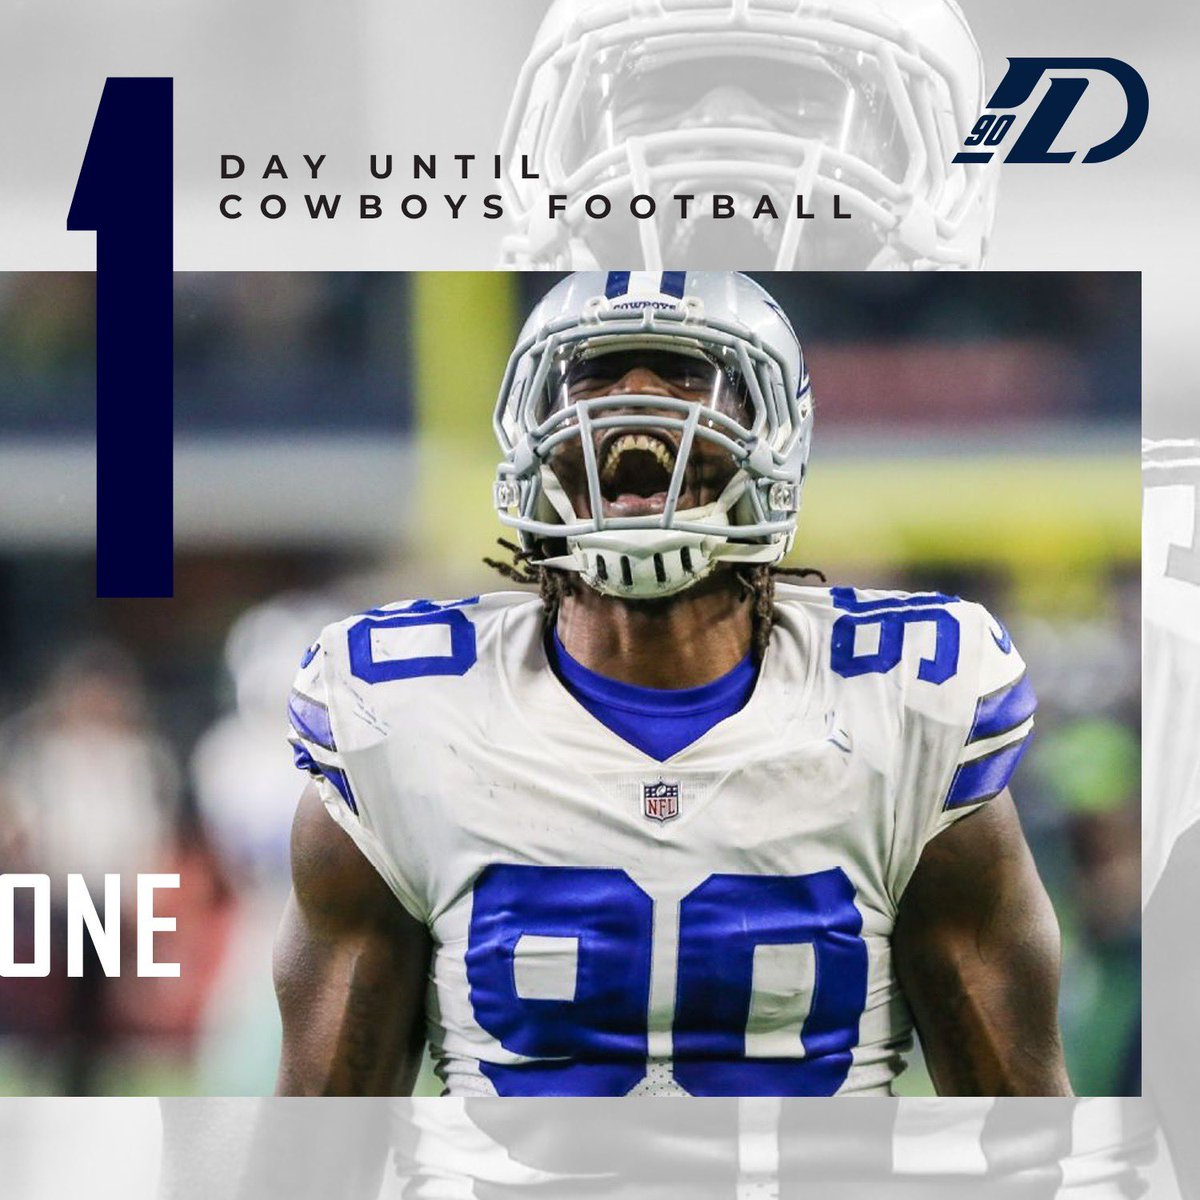 Proud of how this team has prepared. Now time to put it on the field! 🤘🏿 . #LawN90rder #CowboysNation